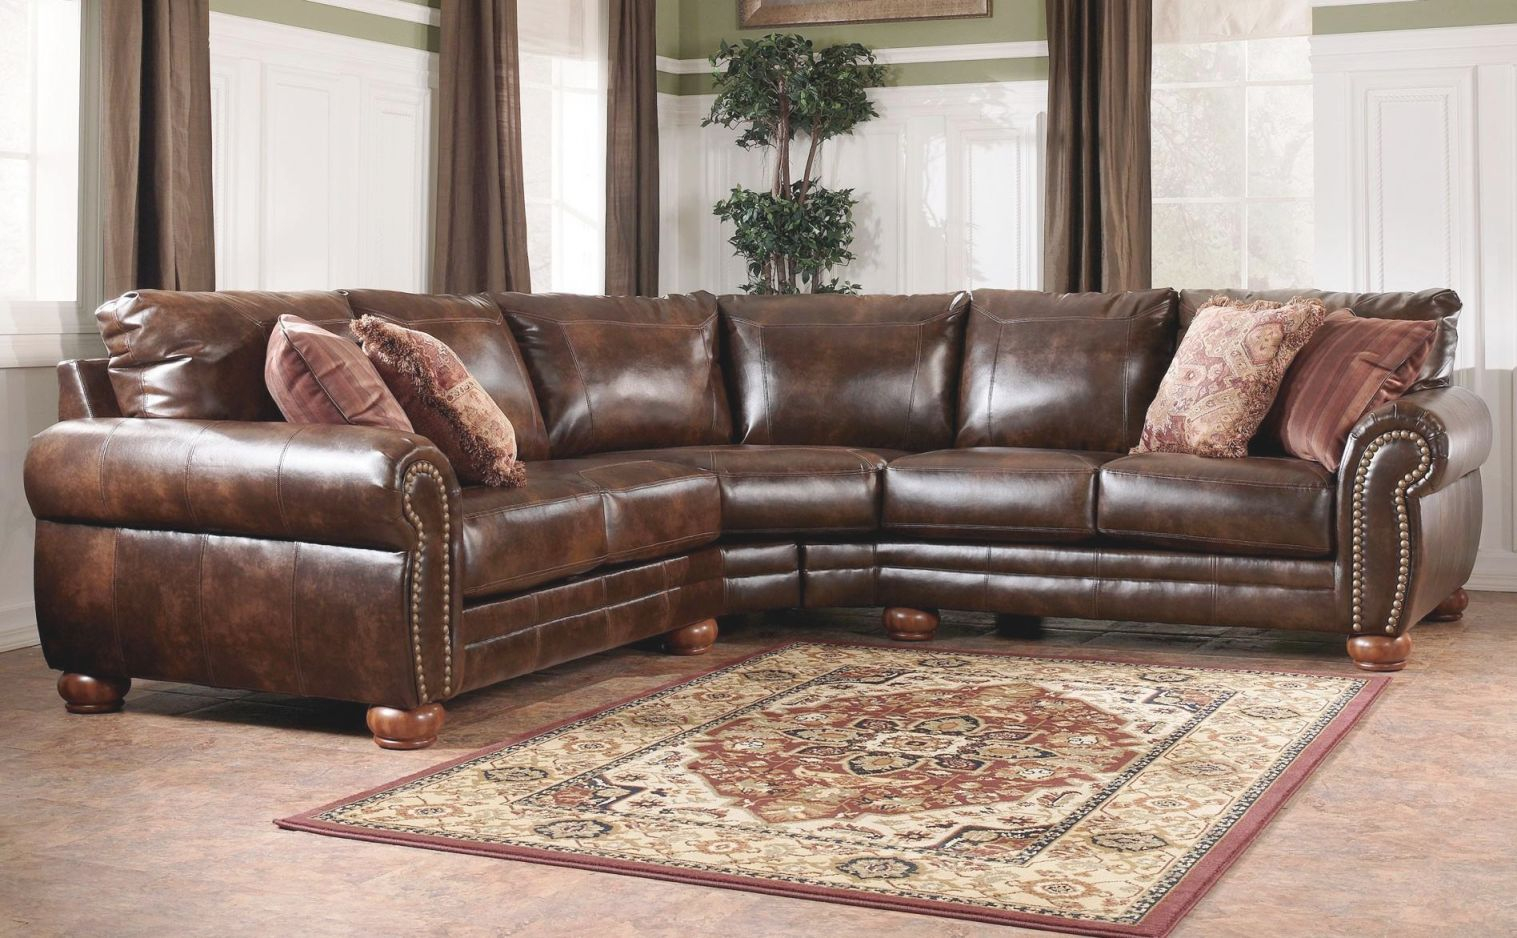 Awesome Leather Sofa Bed Costco Futon Rooms Red Modern Macys Regarding Costco Living Room Furniture Awesome Decors